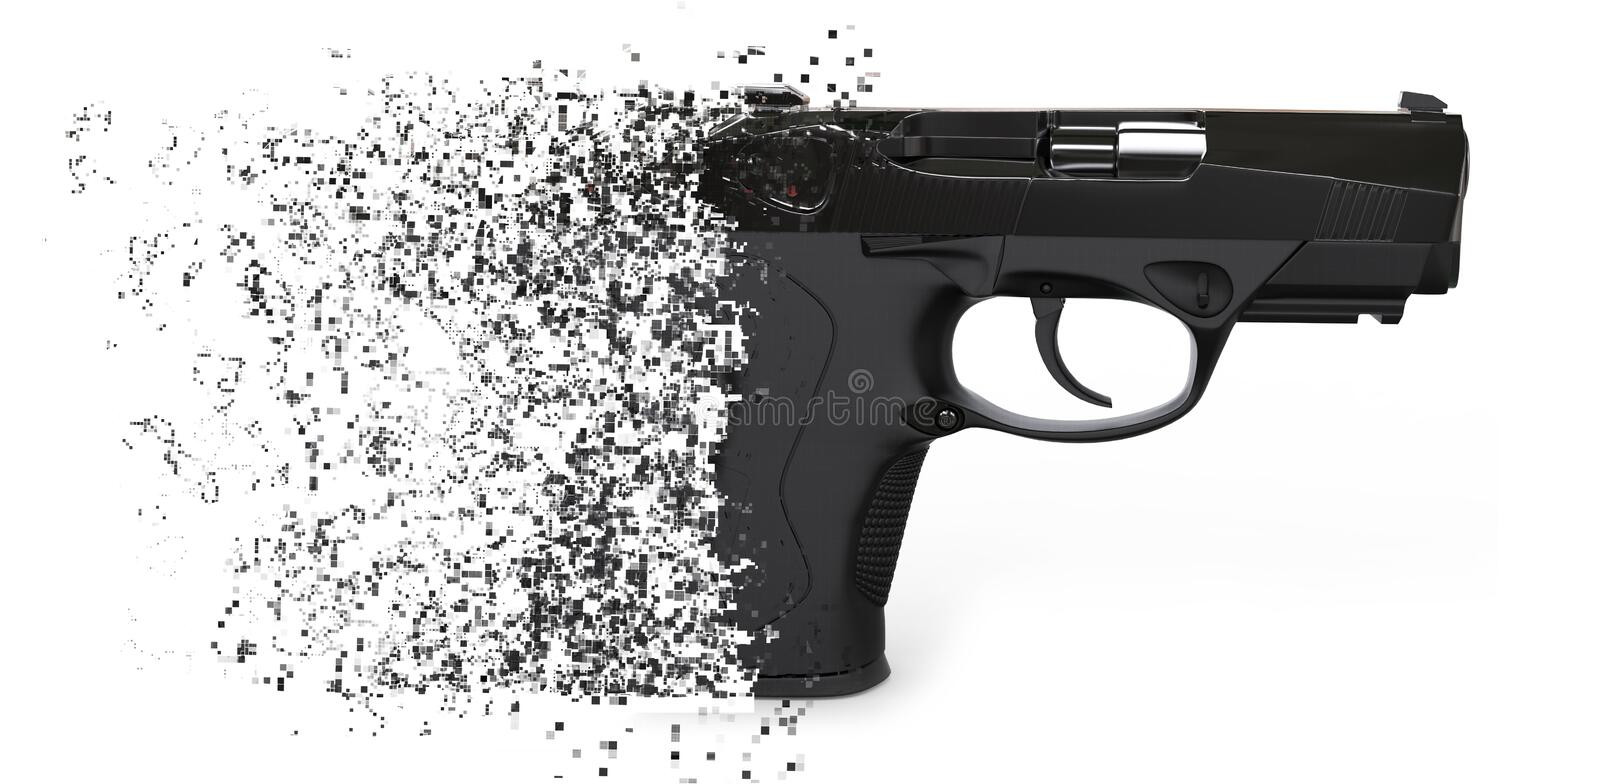 Dissolution du pistolet semi automatique illustration libre de droits